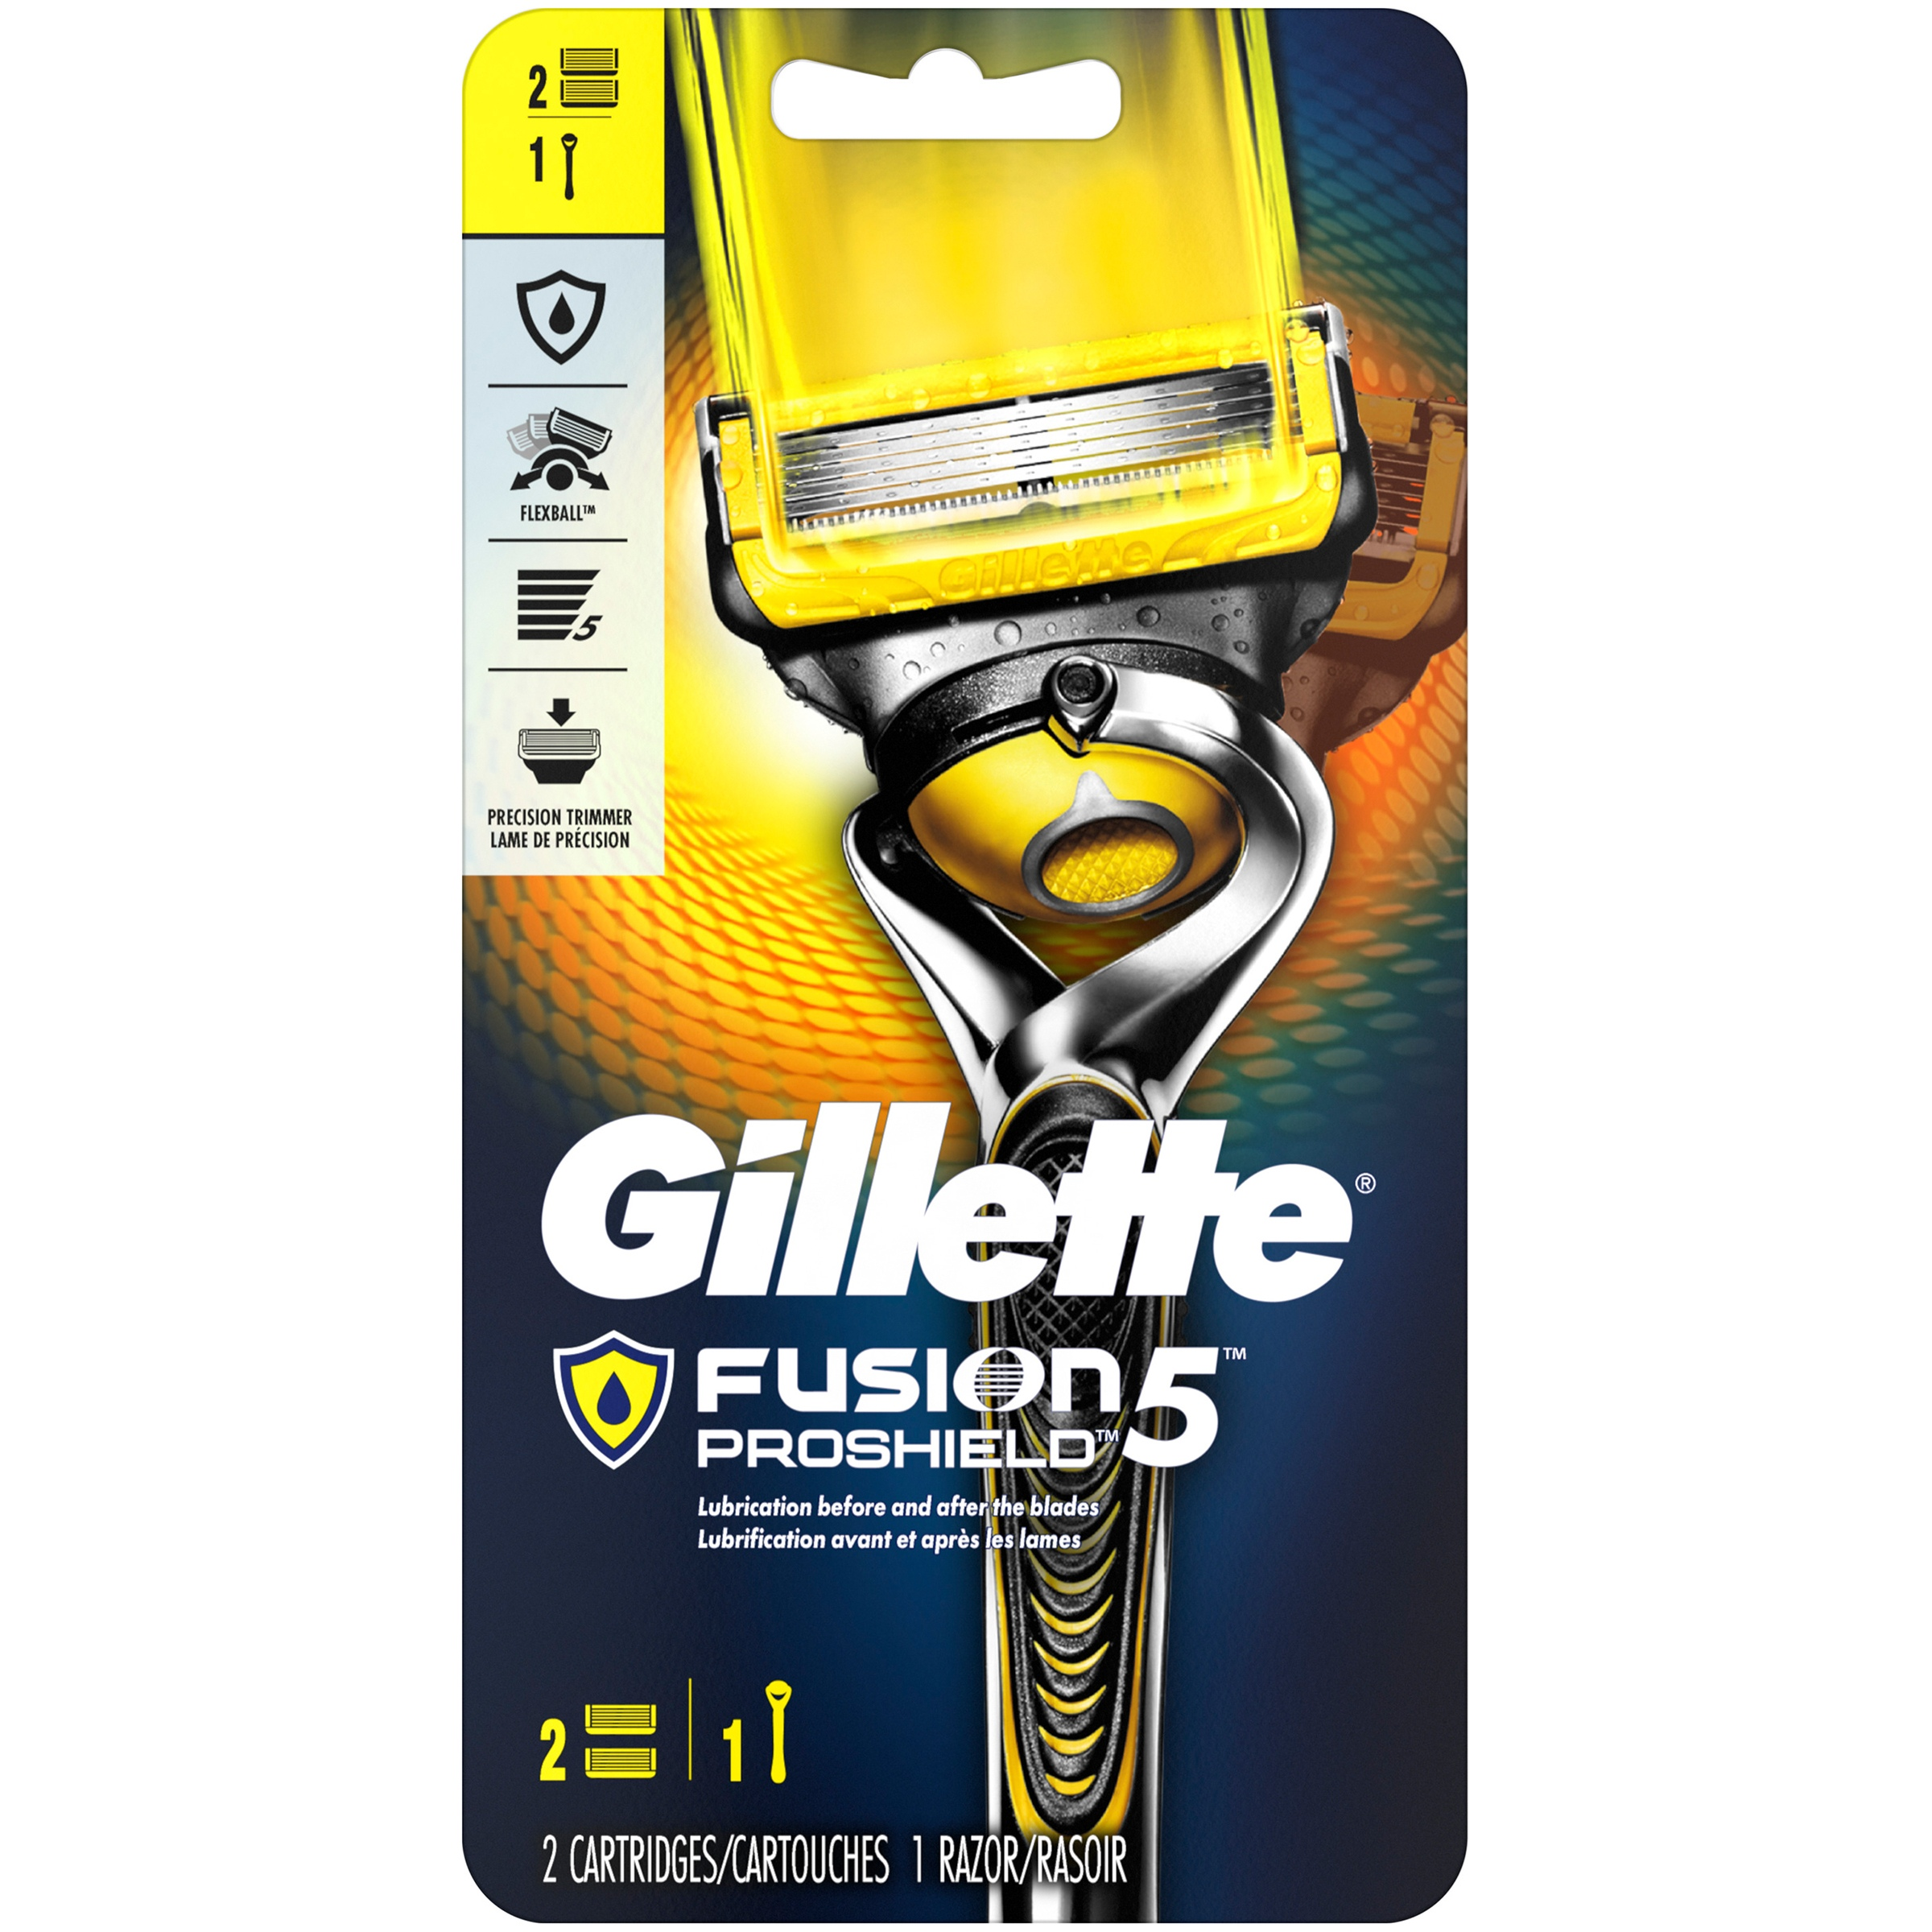 Gillette Fusion5 ProShield Mens Razor, Handle & 2 Blade Refills